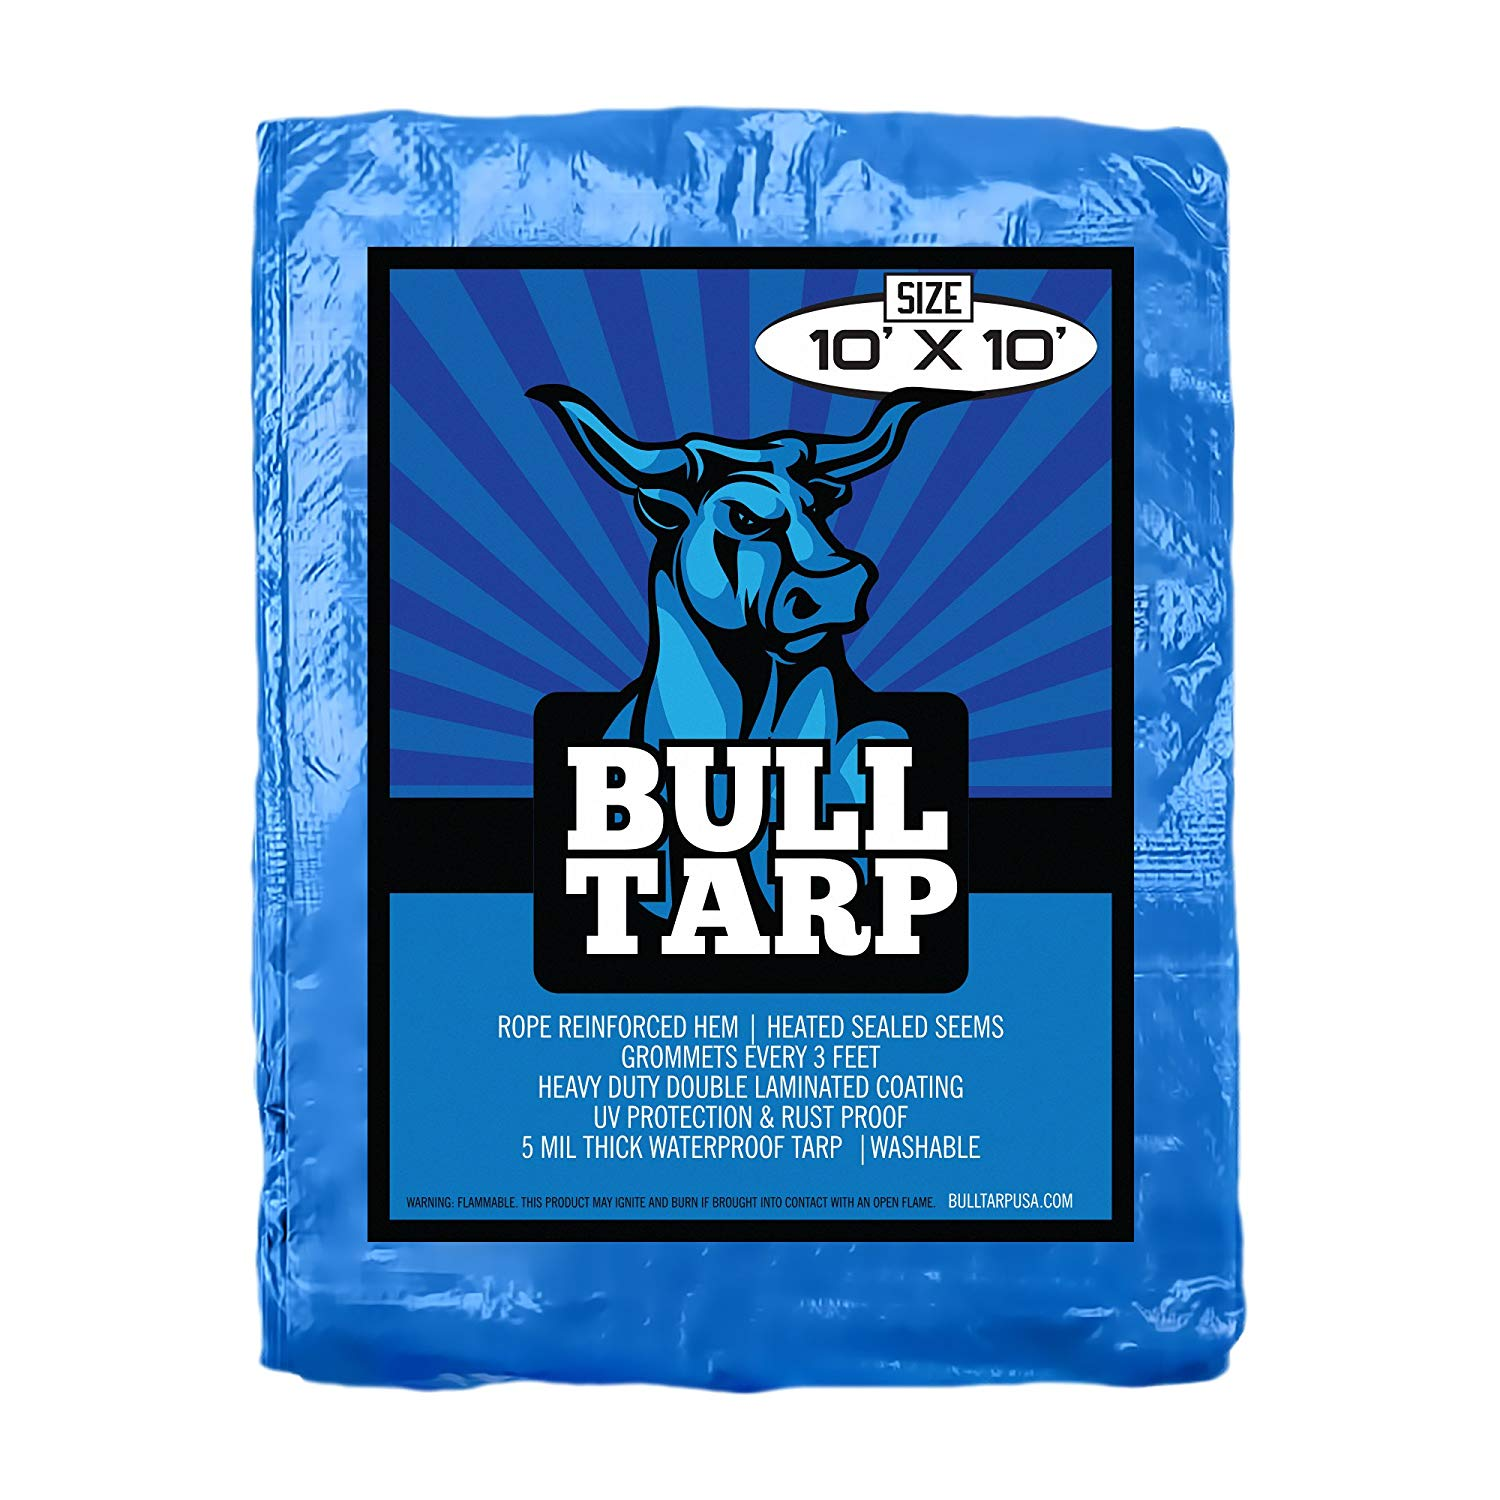 Blue Poly Tarp Cover 5 Mil Thick, Multi Purpose Waterproof Tarpaulin, UV Resistant, Reinforced Rip-Stop with Grommets Every 3 Feet. (10X10)